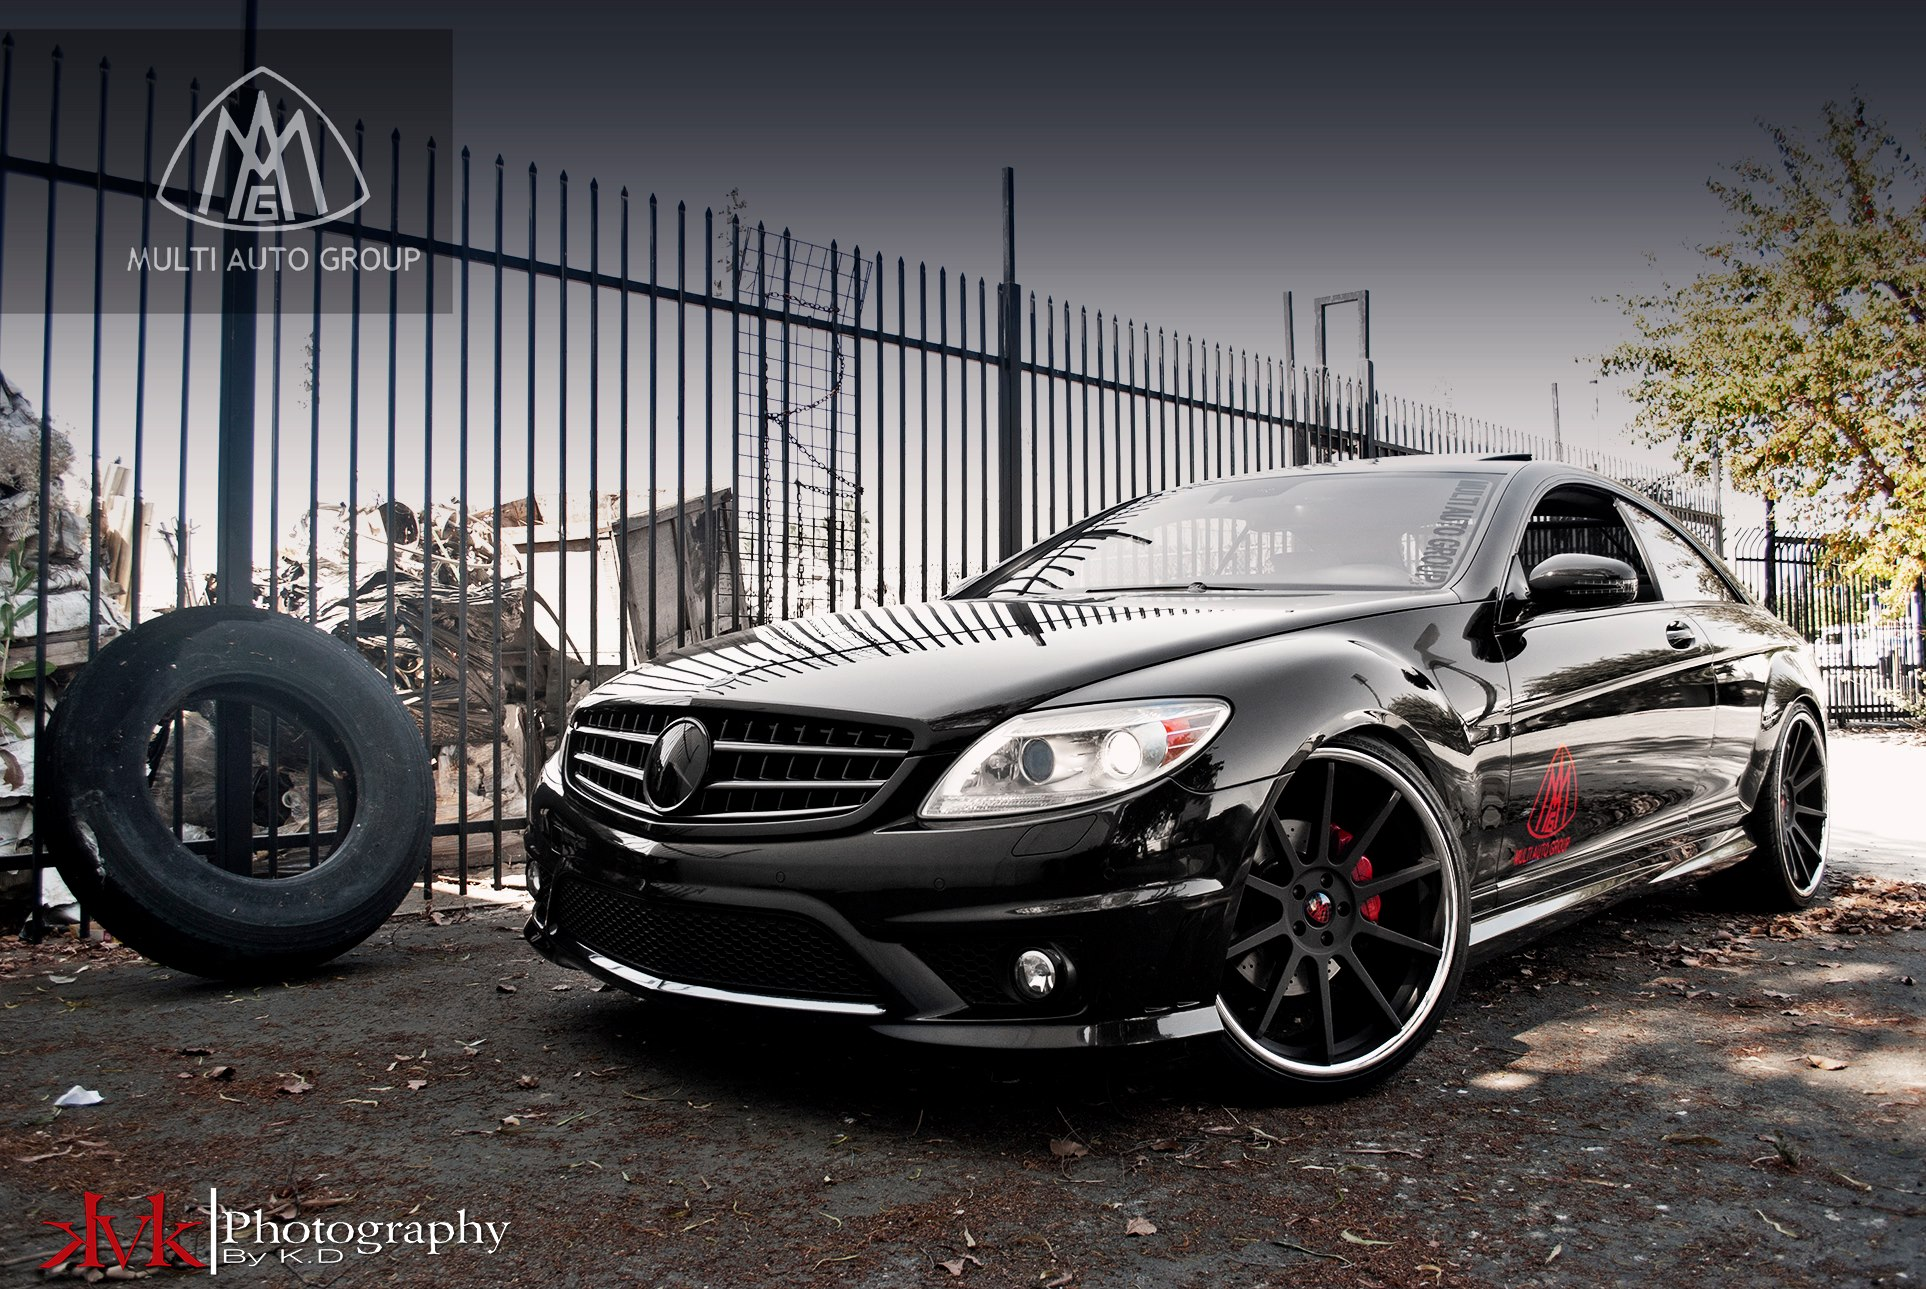 Koko Kuture Lindos Black on Mercedes Benz CL Class